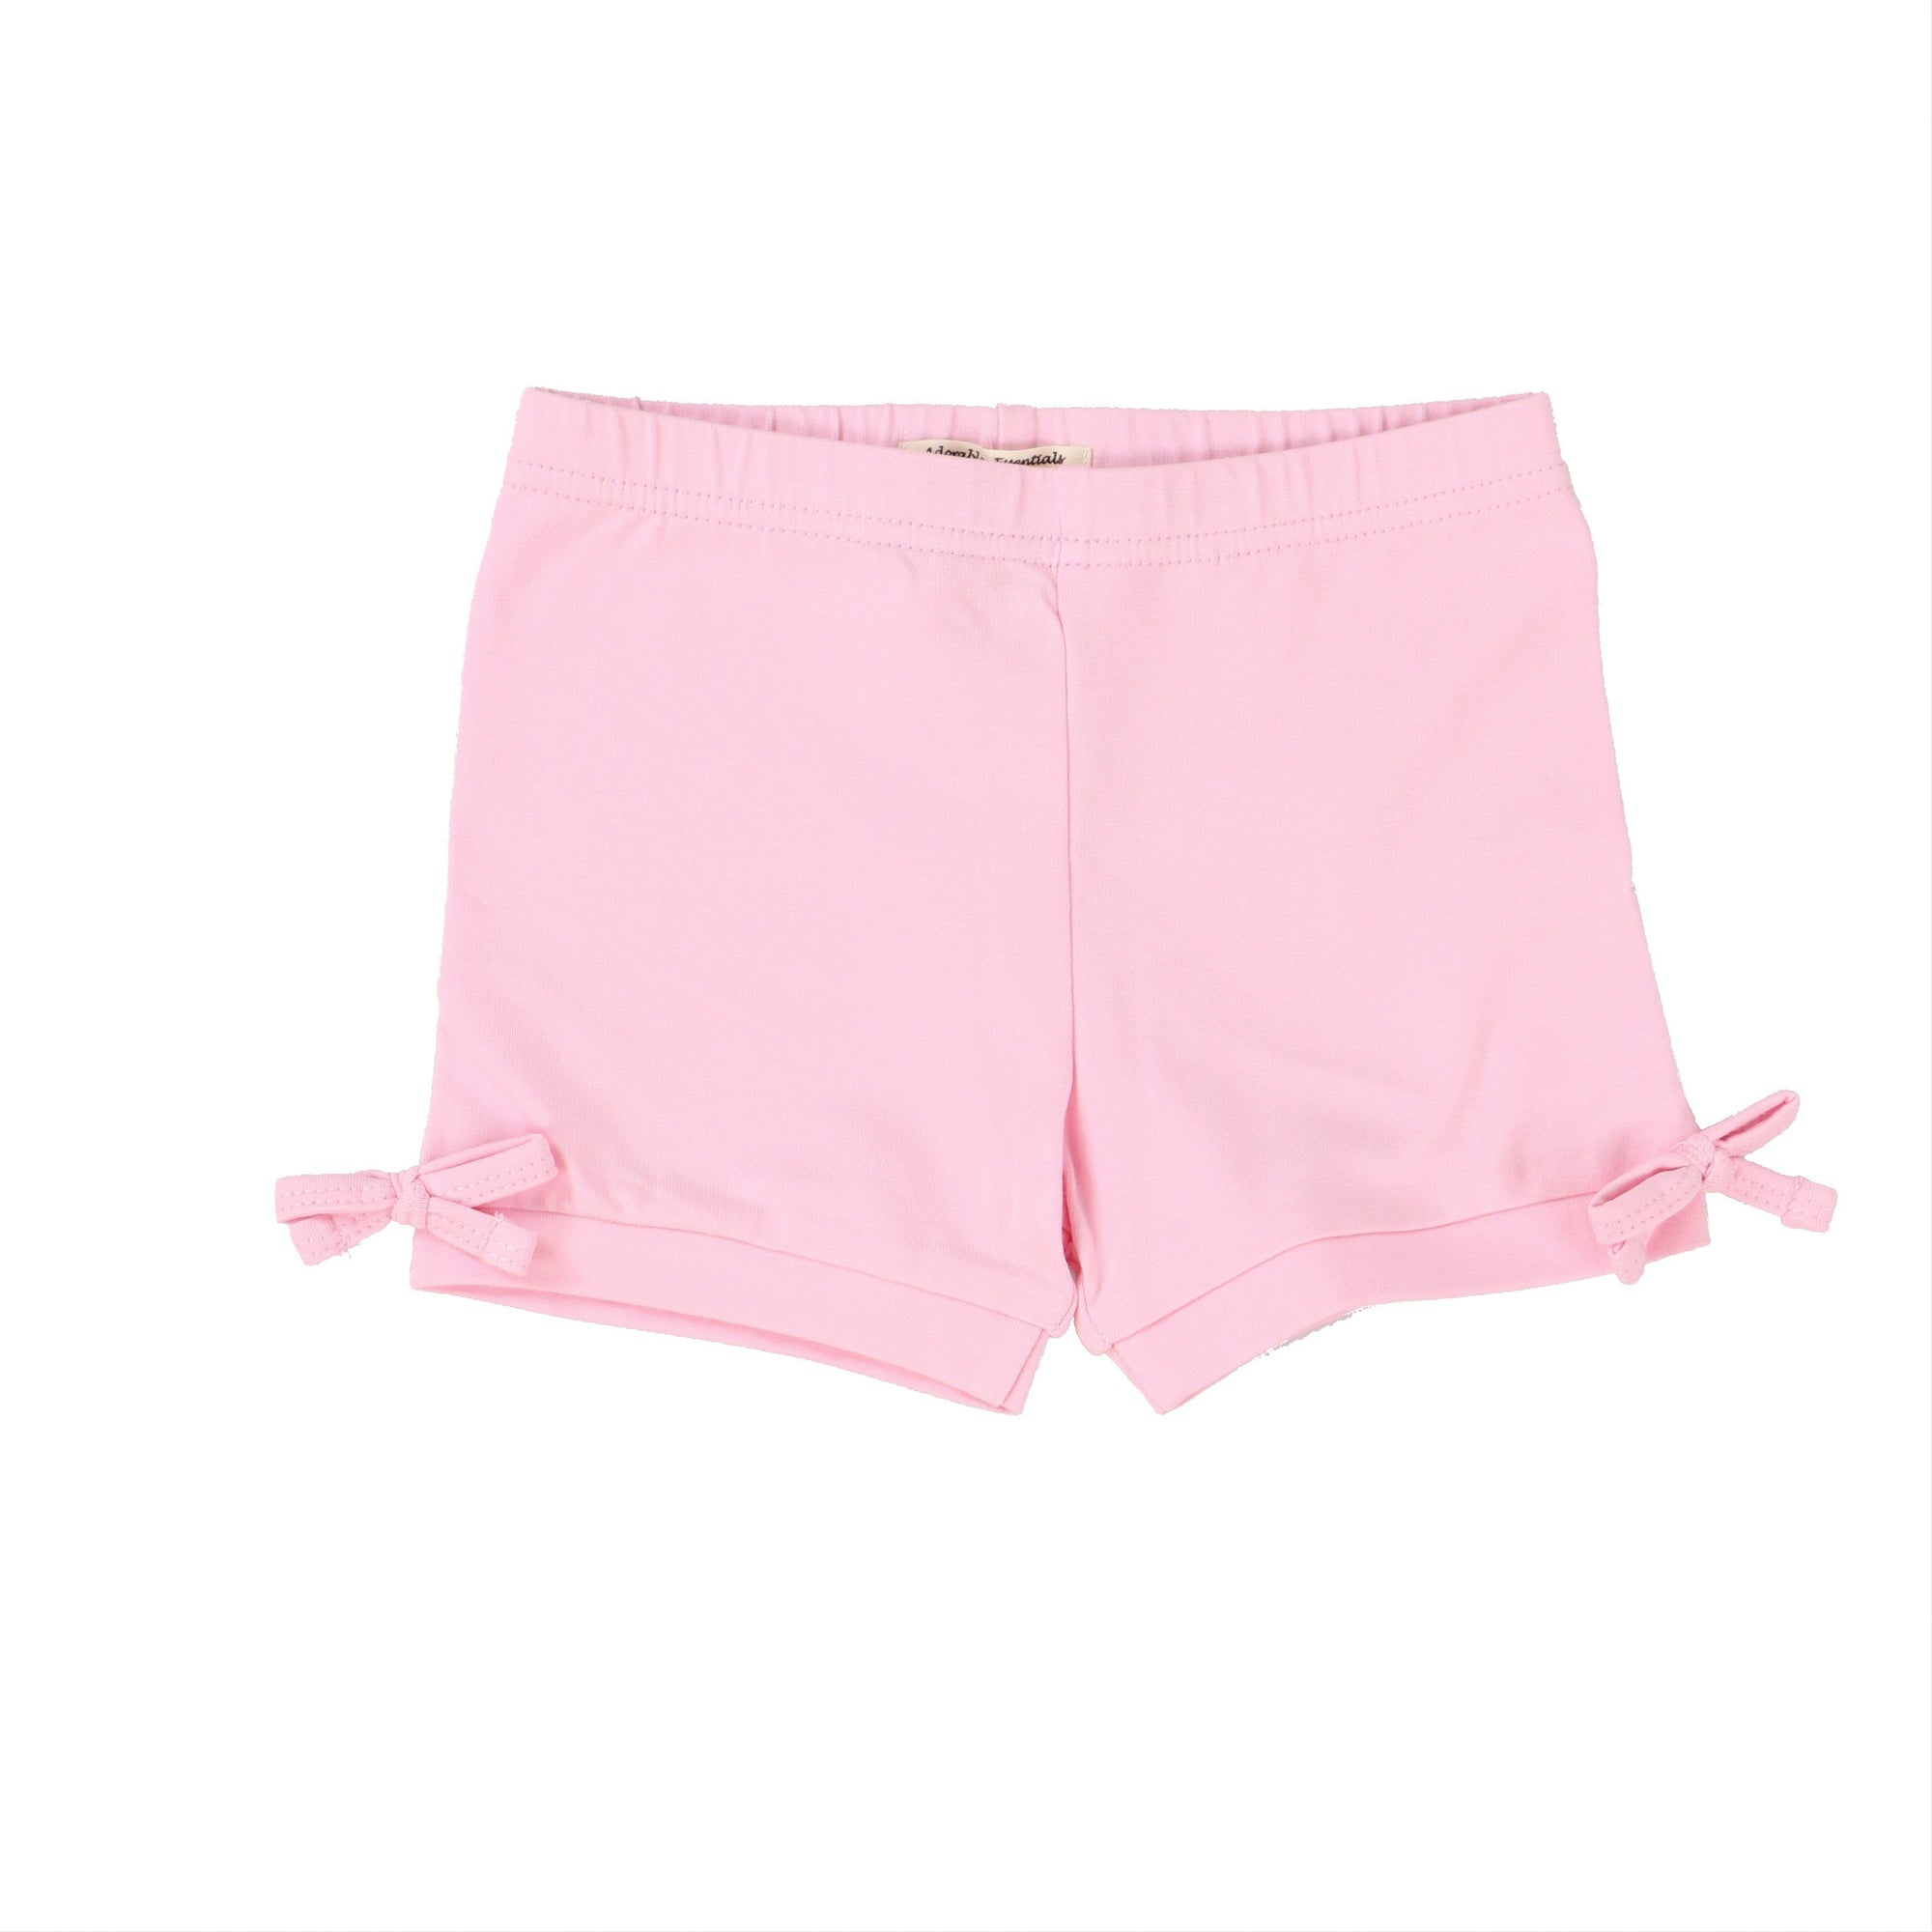 Lulu Shorts - Adorable Essentials